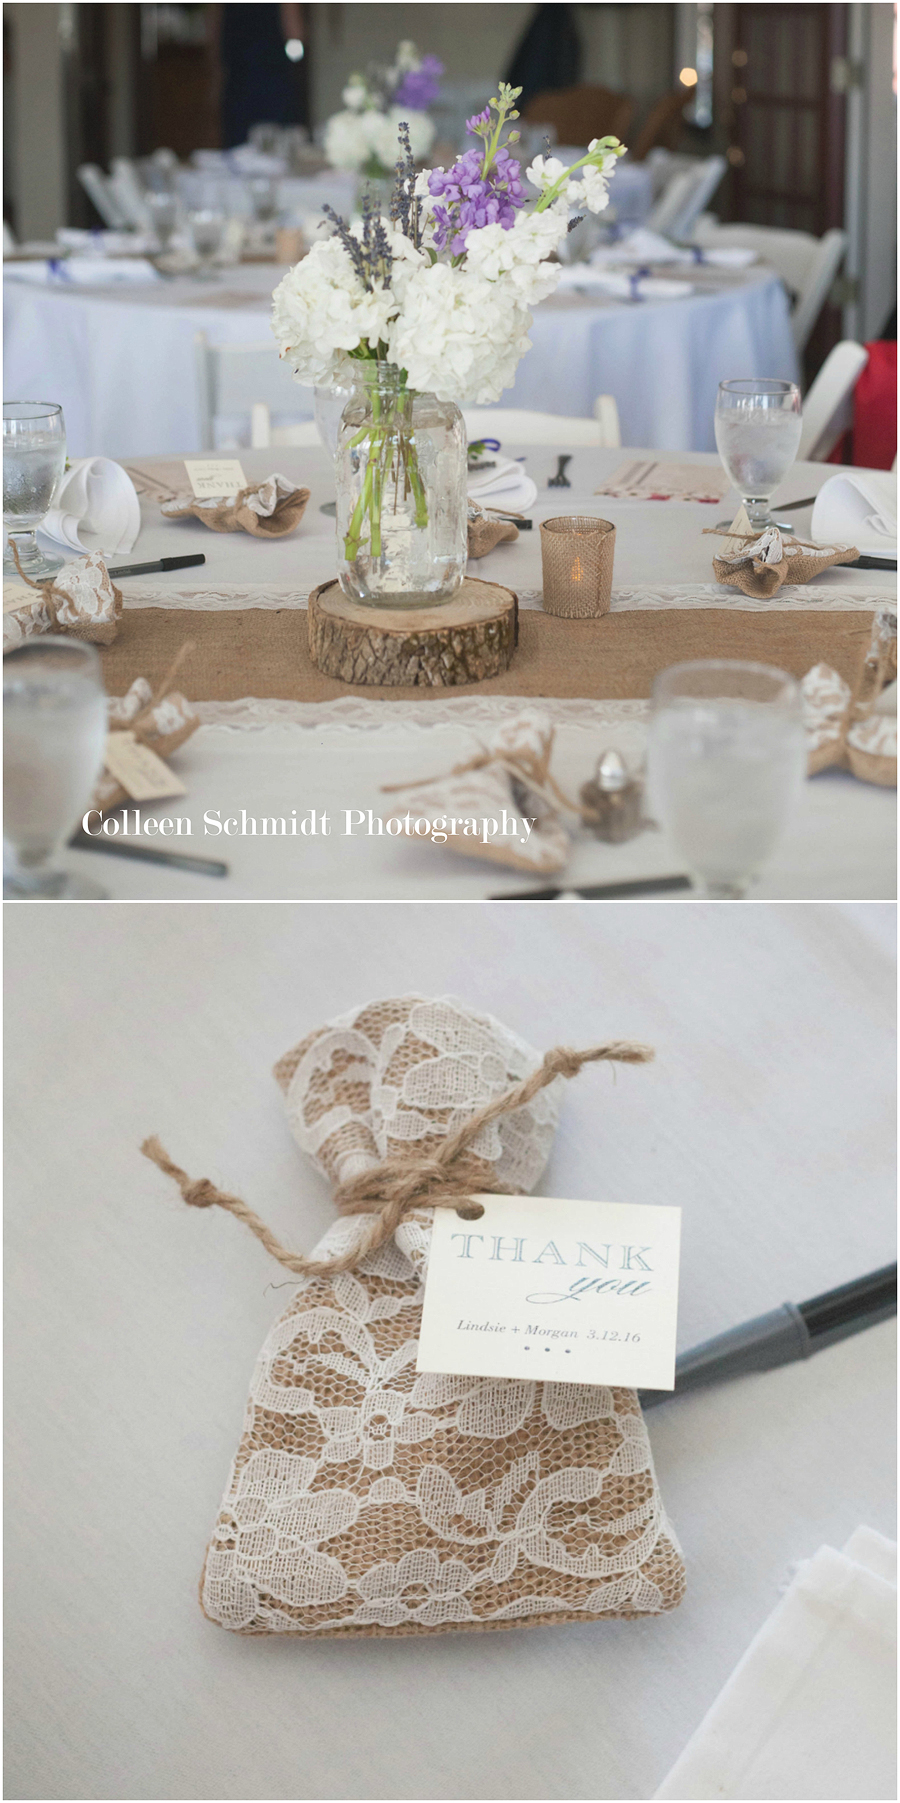 Tips on throwing a bridal shower! — Colleen Schmidt Photo